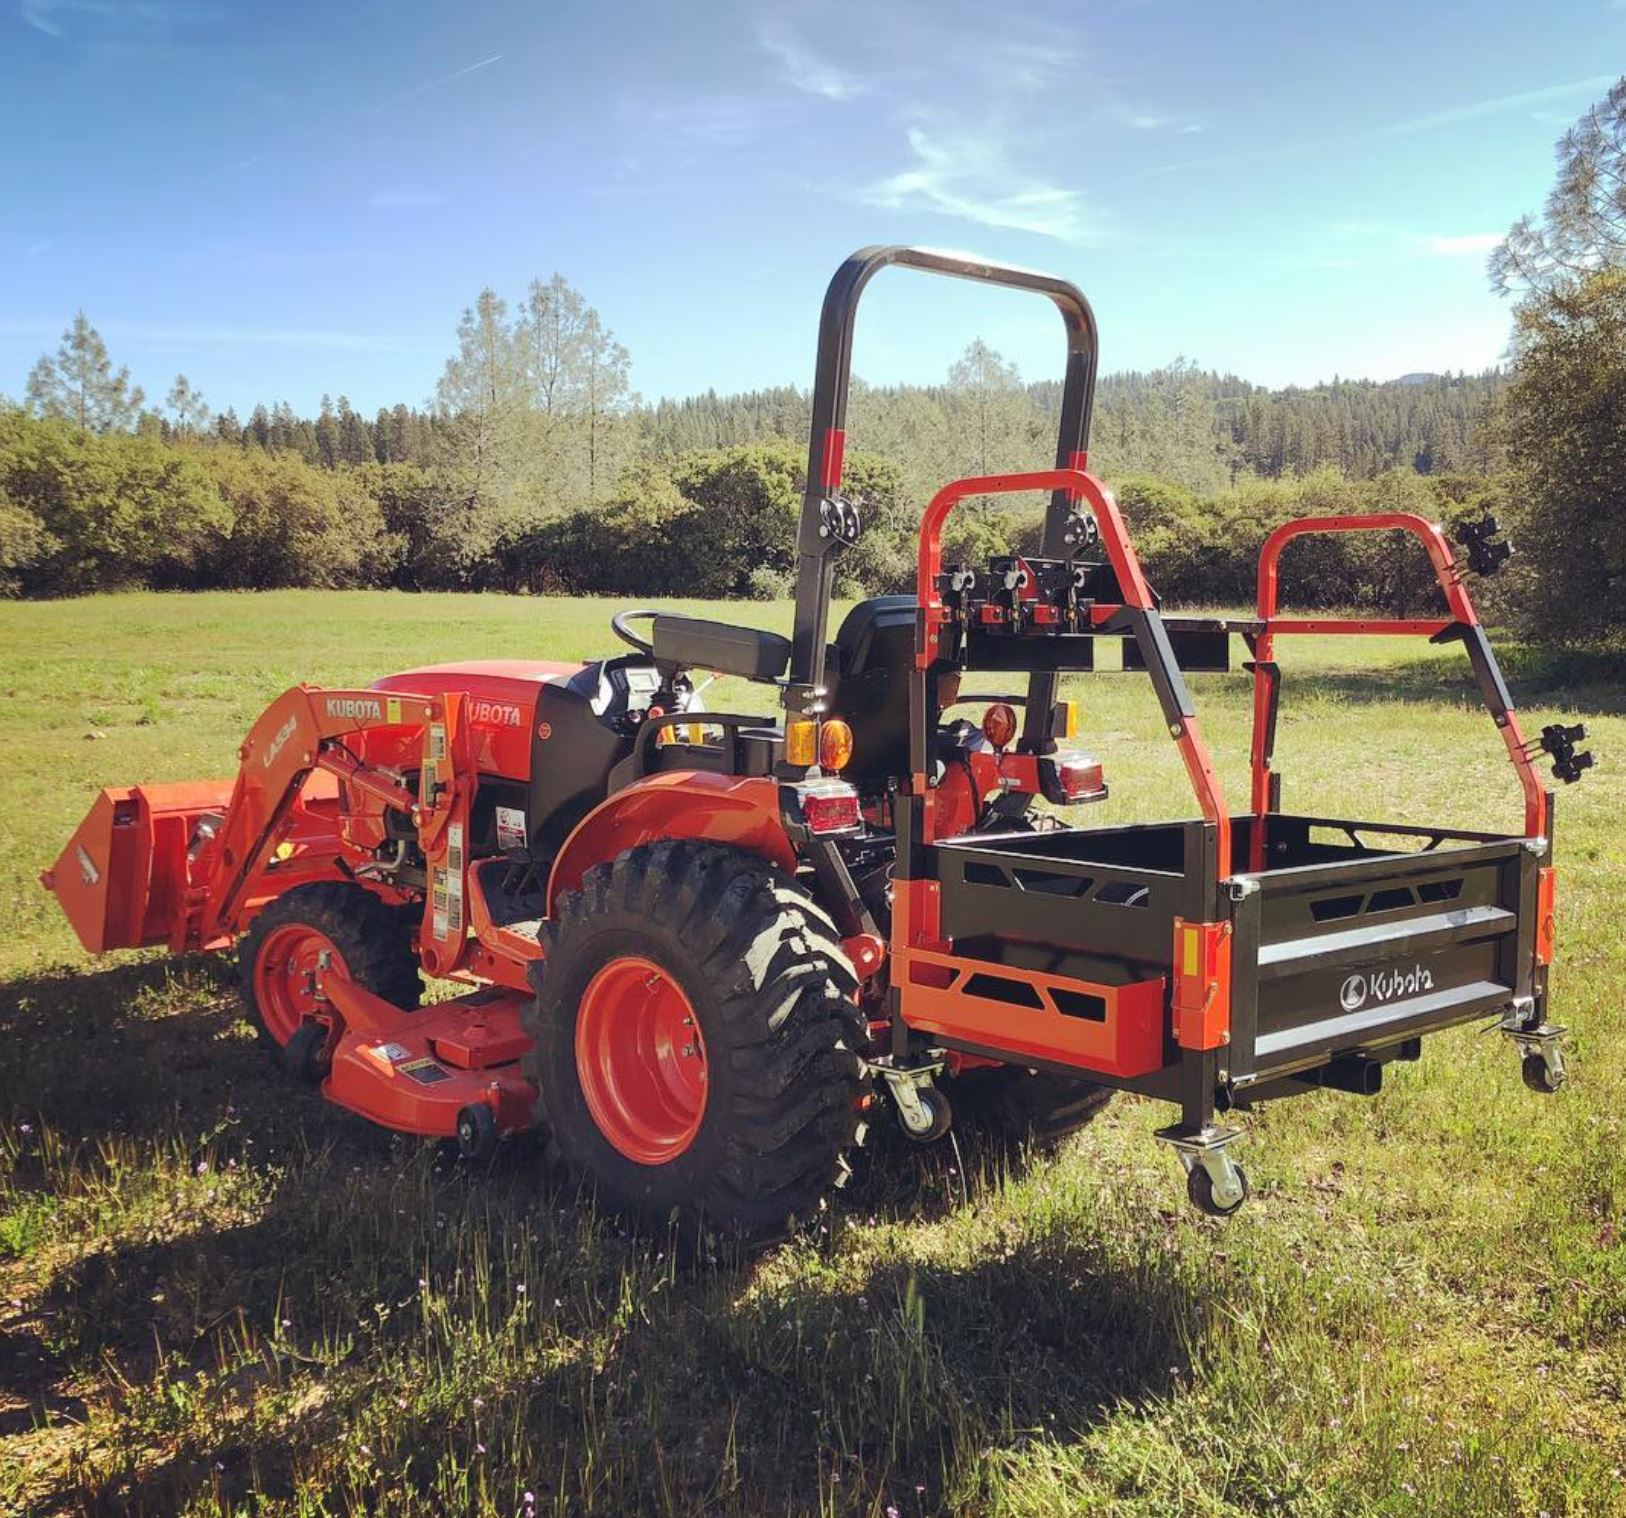 BigToolRack Photo Gallery | Tractor tool rack | Cool tractor